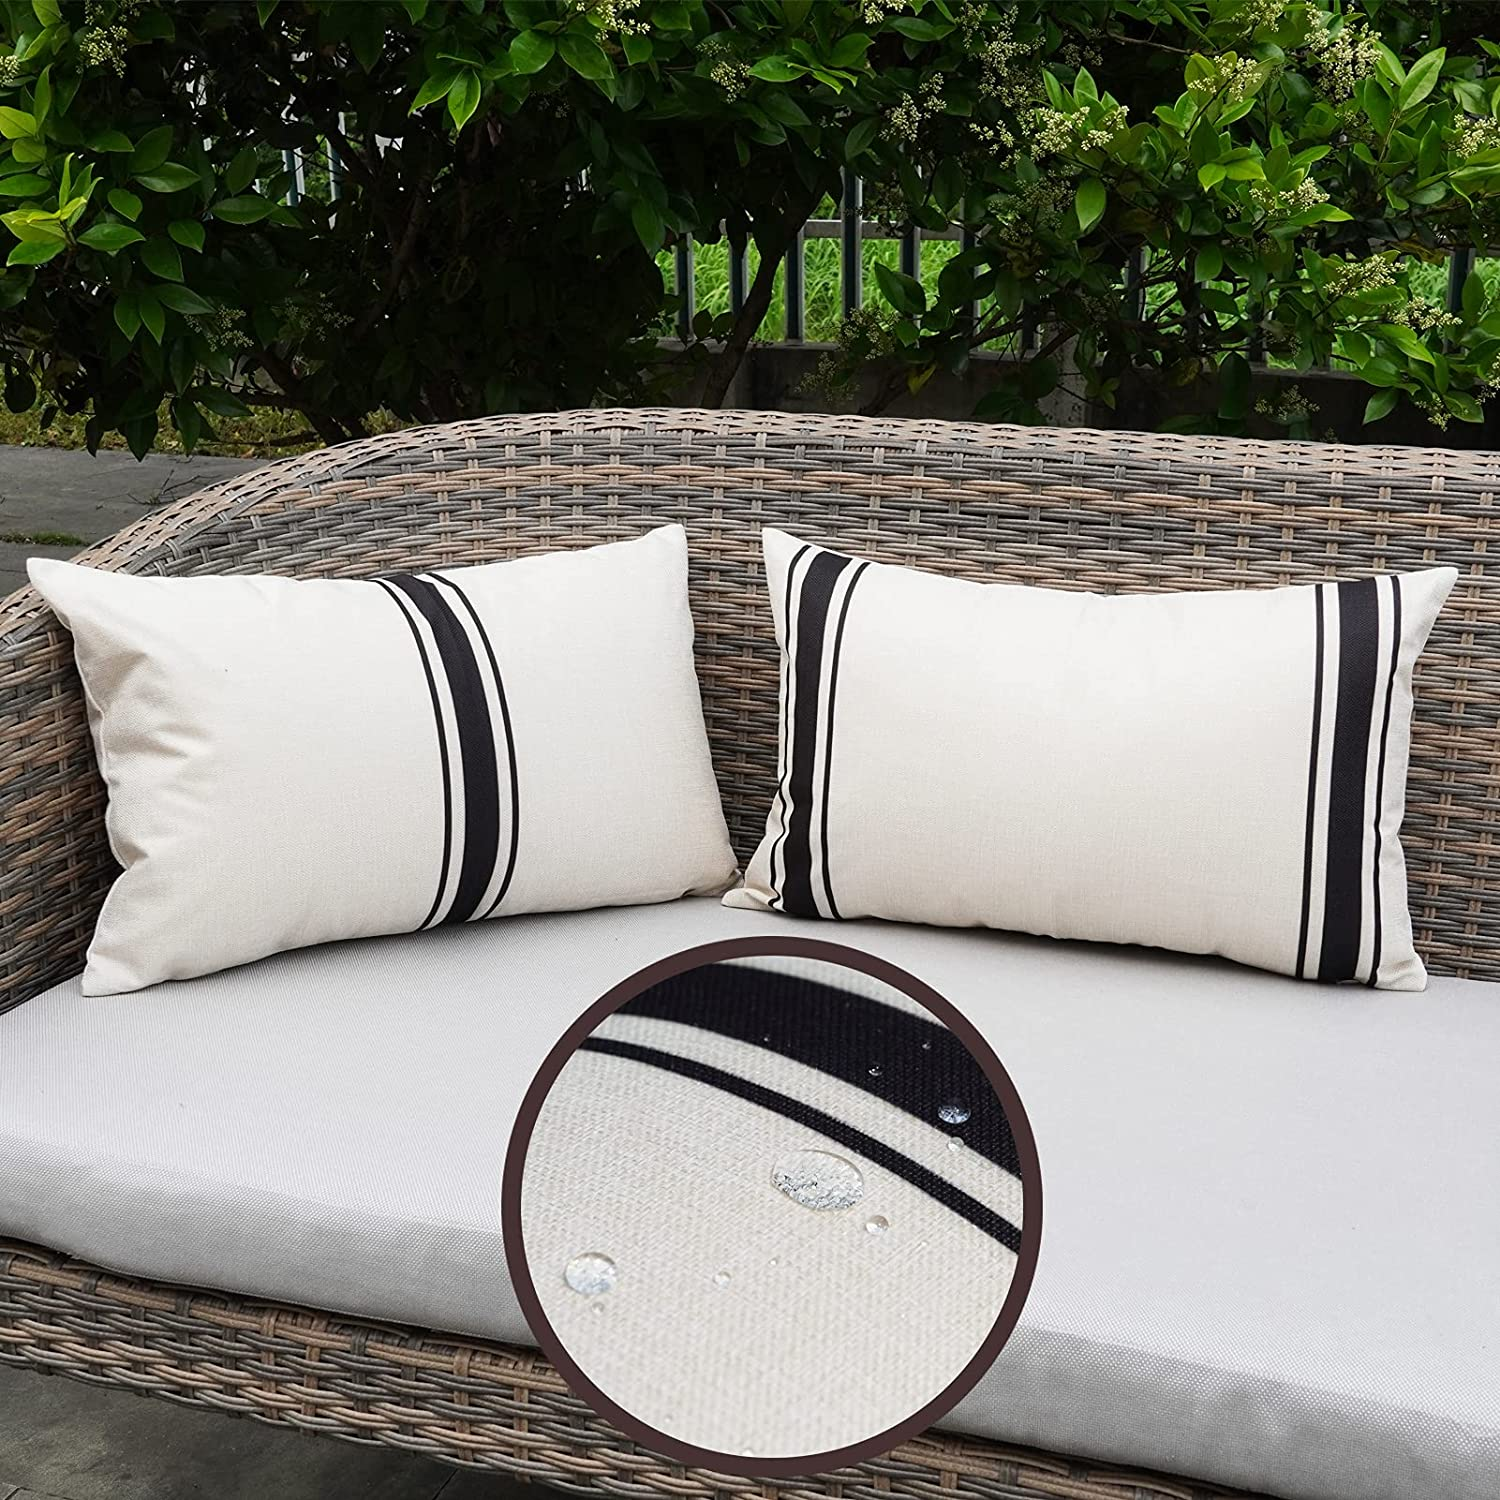 ONWAY Outdoor Pillow Covers Waterproof 12X20 Set of 2 Lumbar Throw Pillow Cover Black and White Striped Outdoor Pillows for Patio Furniture and Sunbrella